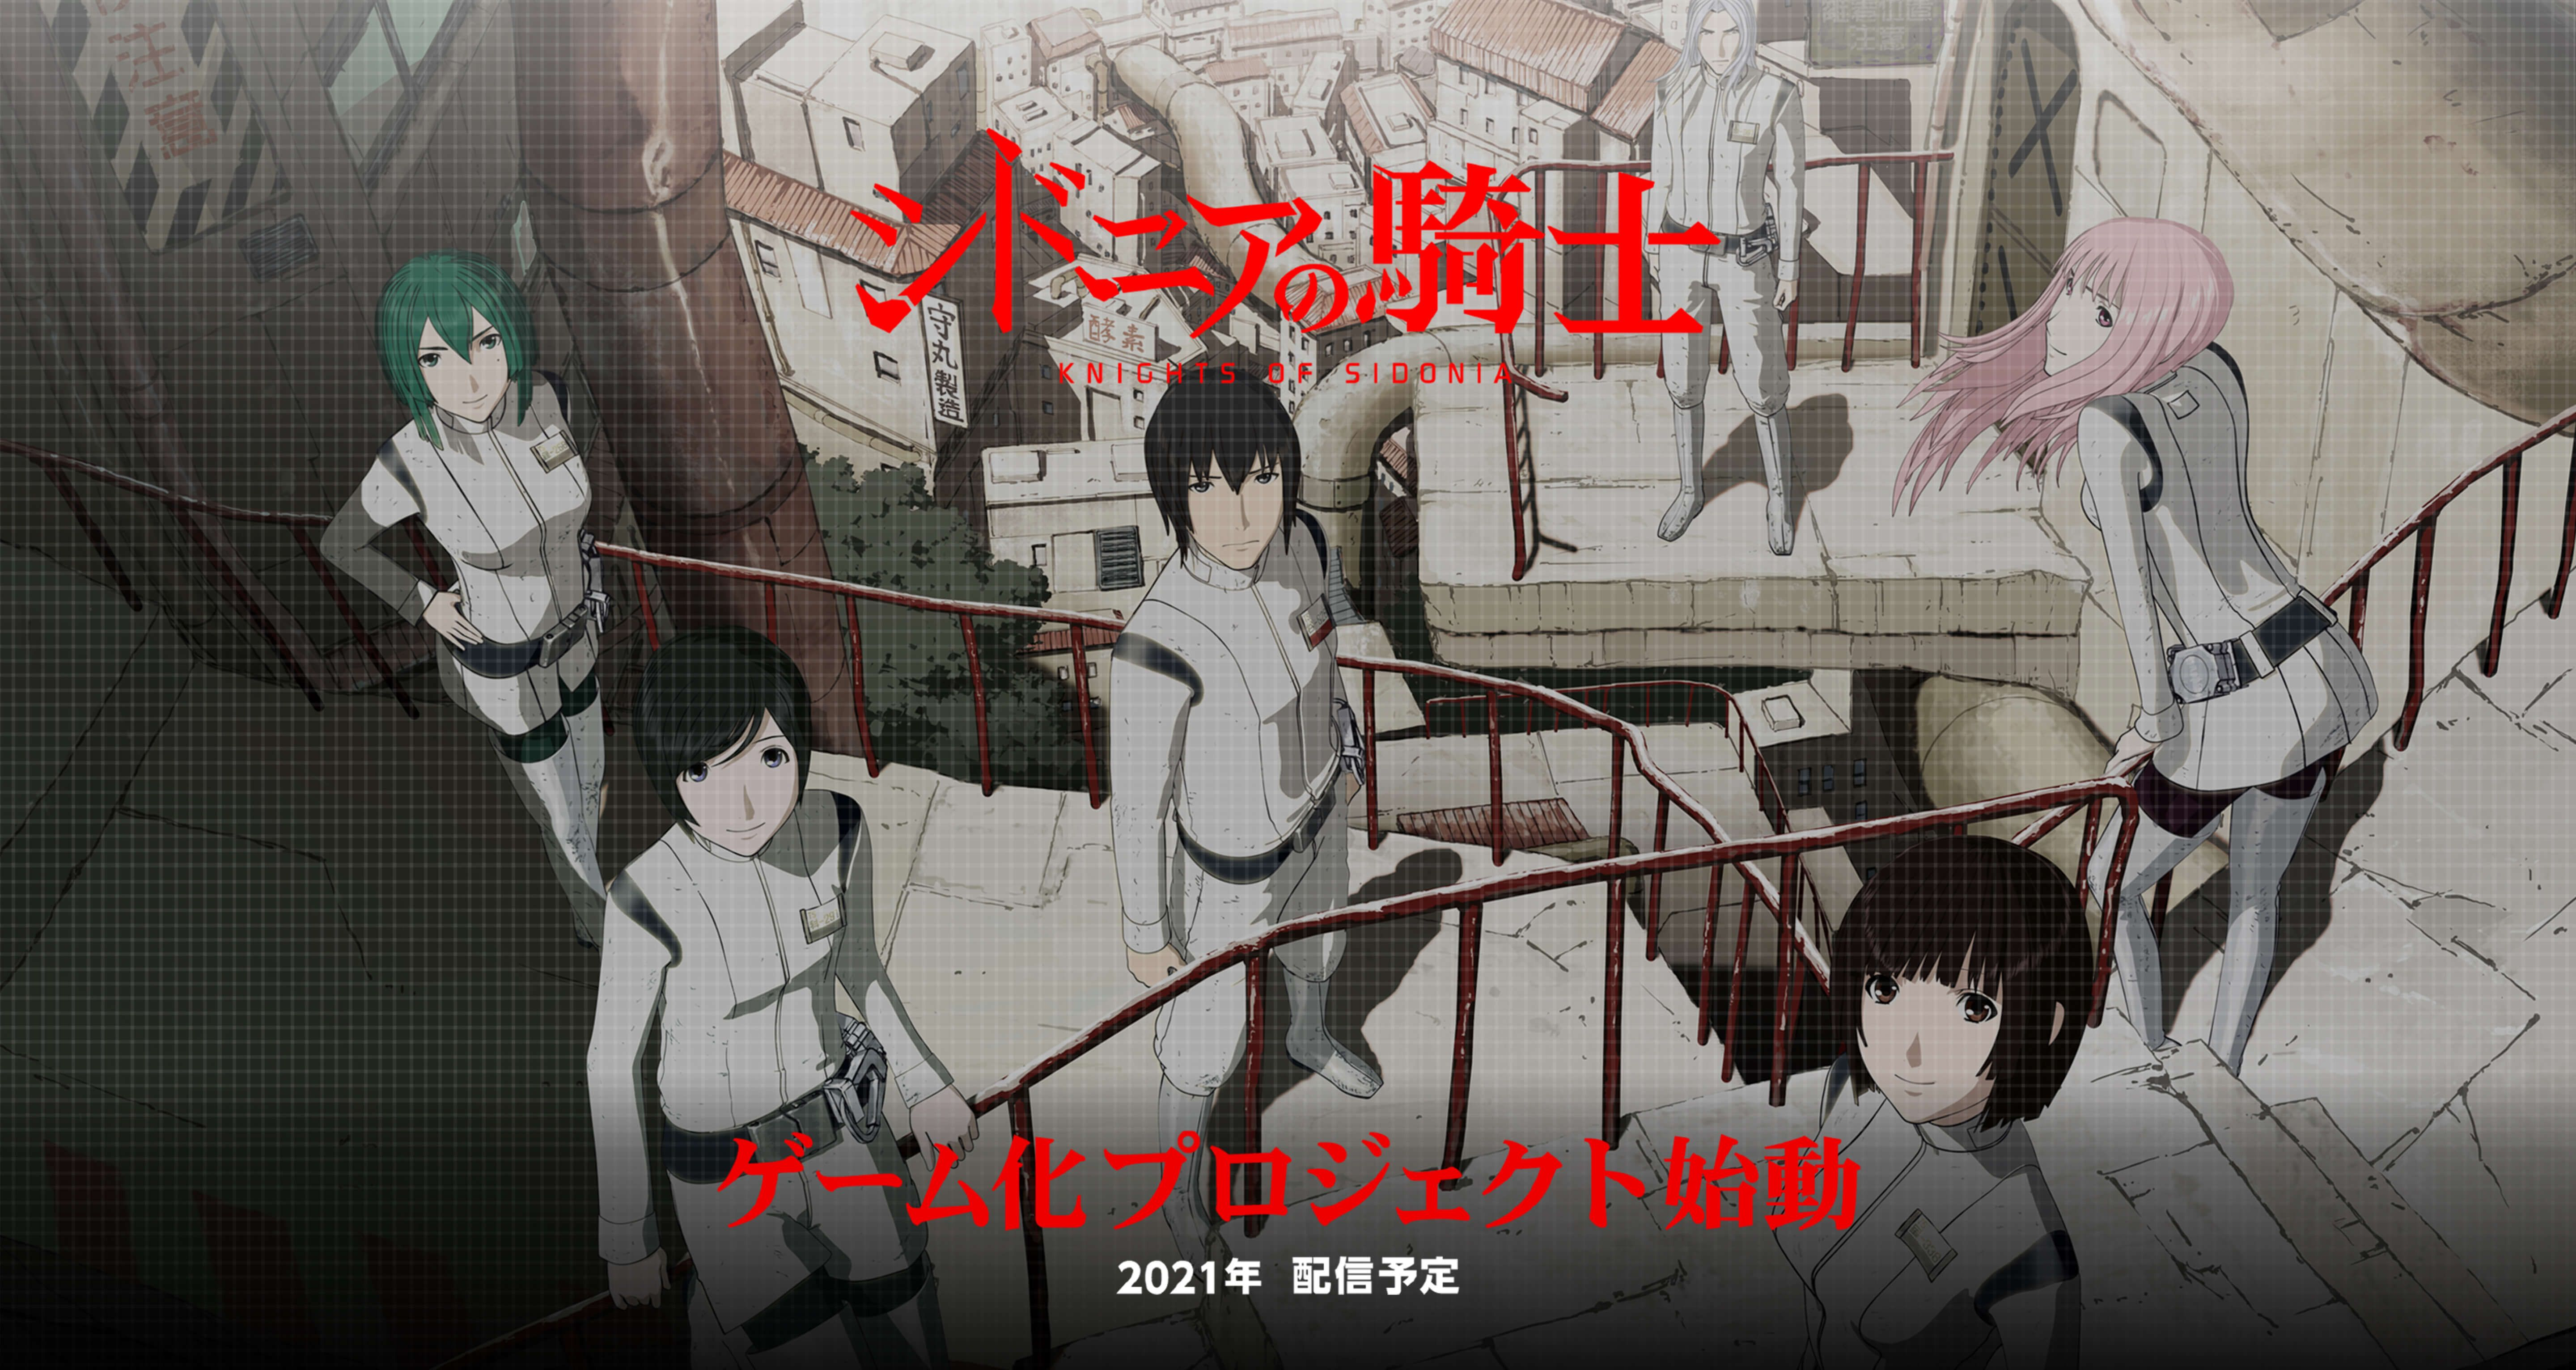 Knights of sidonia game announced for 2021 in 2020